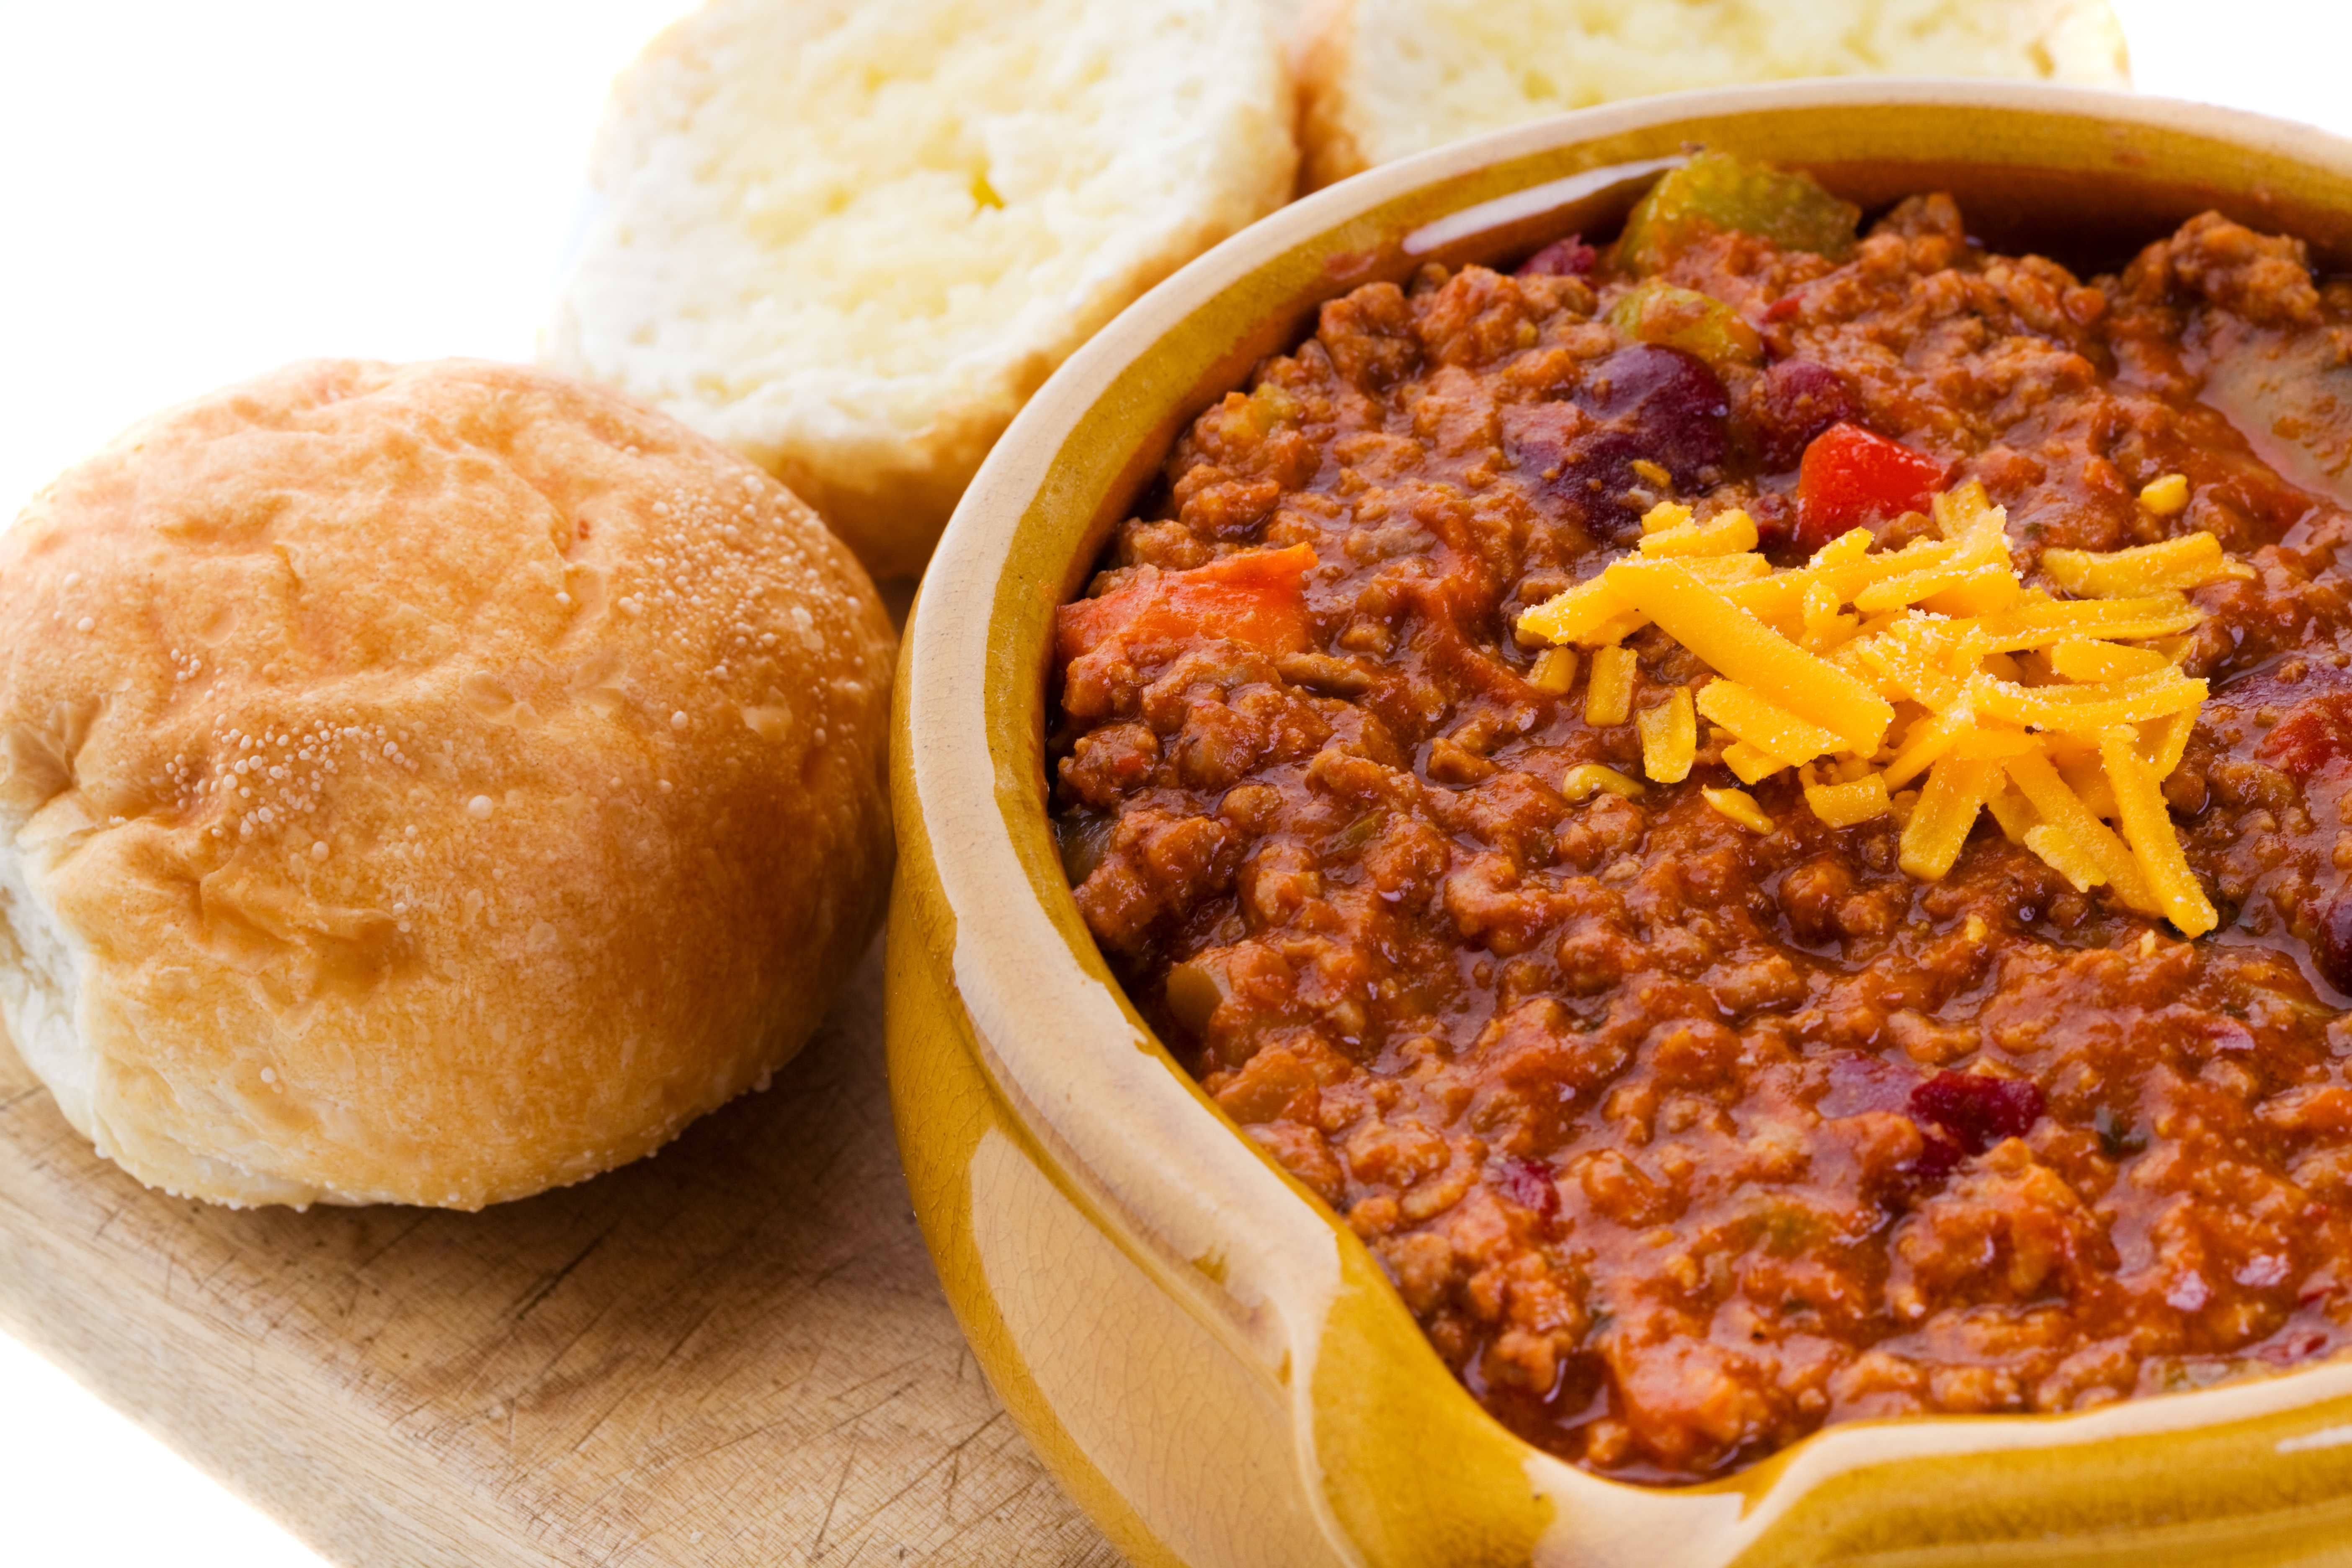 National Chili Day | The Butcher's Blog